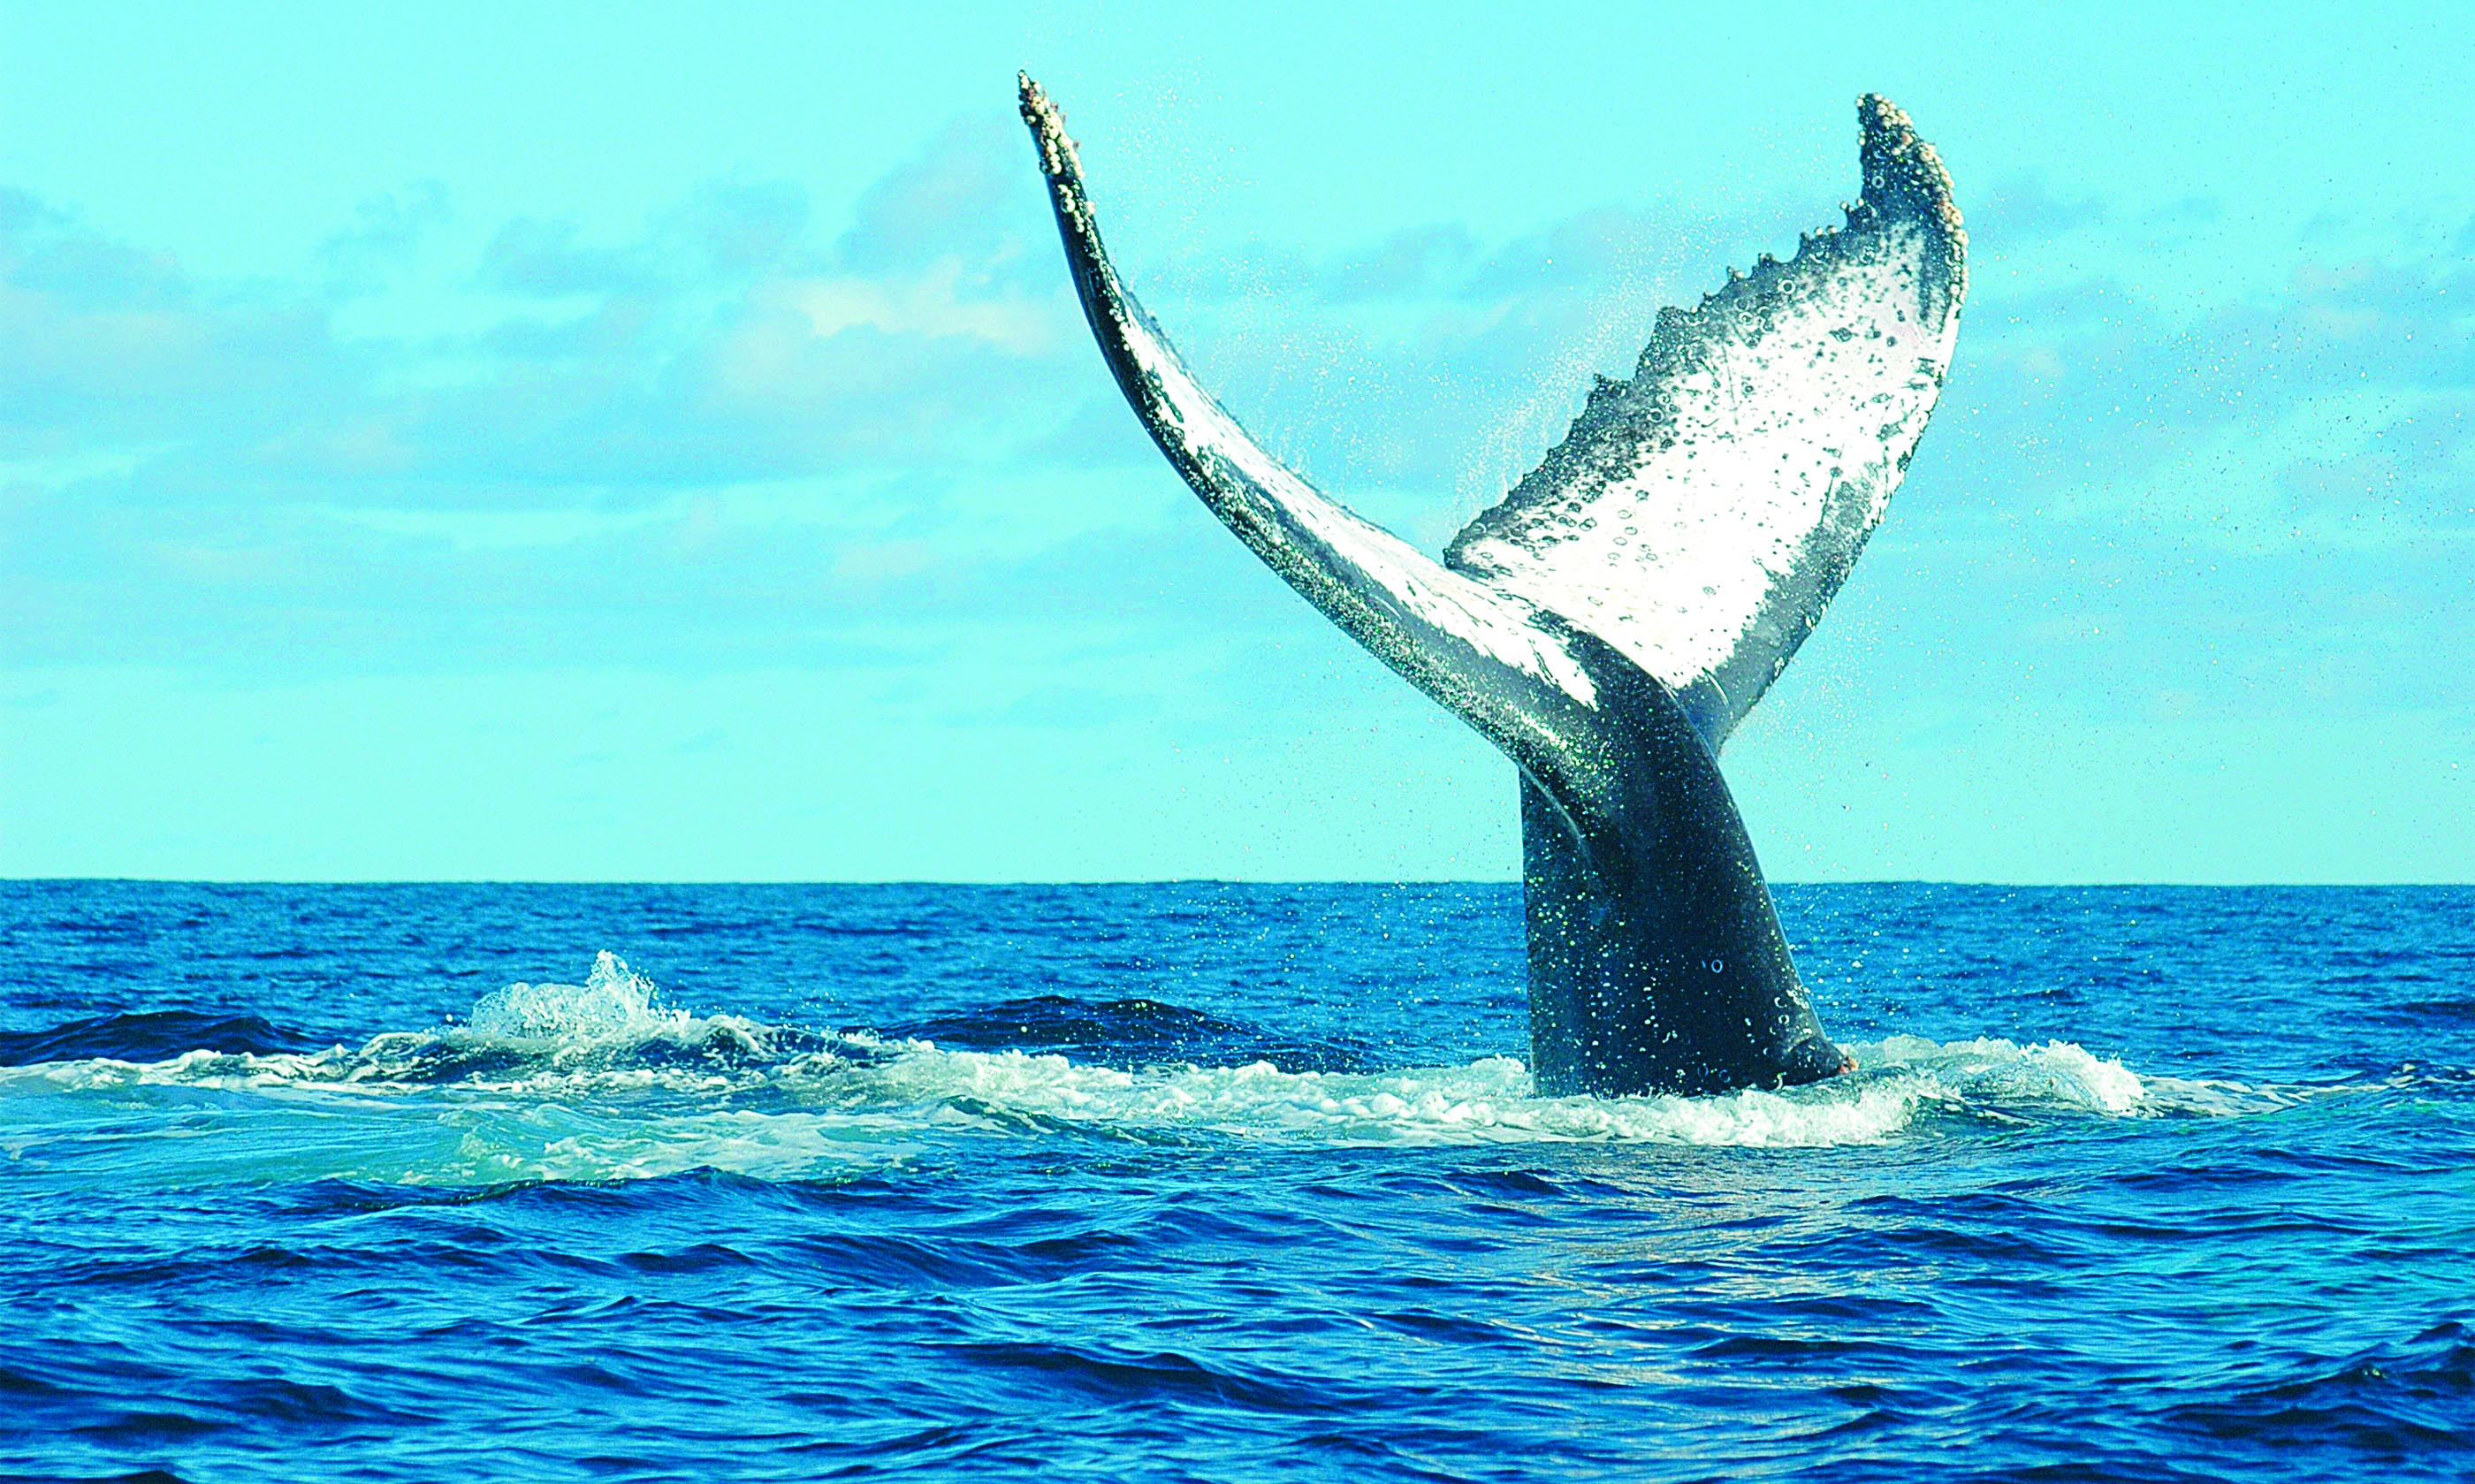 princesse bora lodge spa sainte marie madagascar - Top 15 whale watching trips